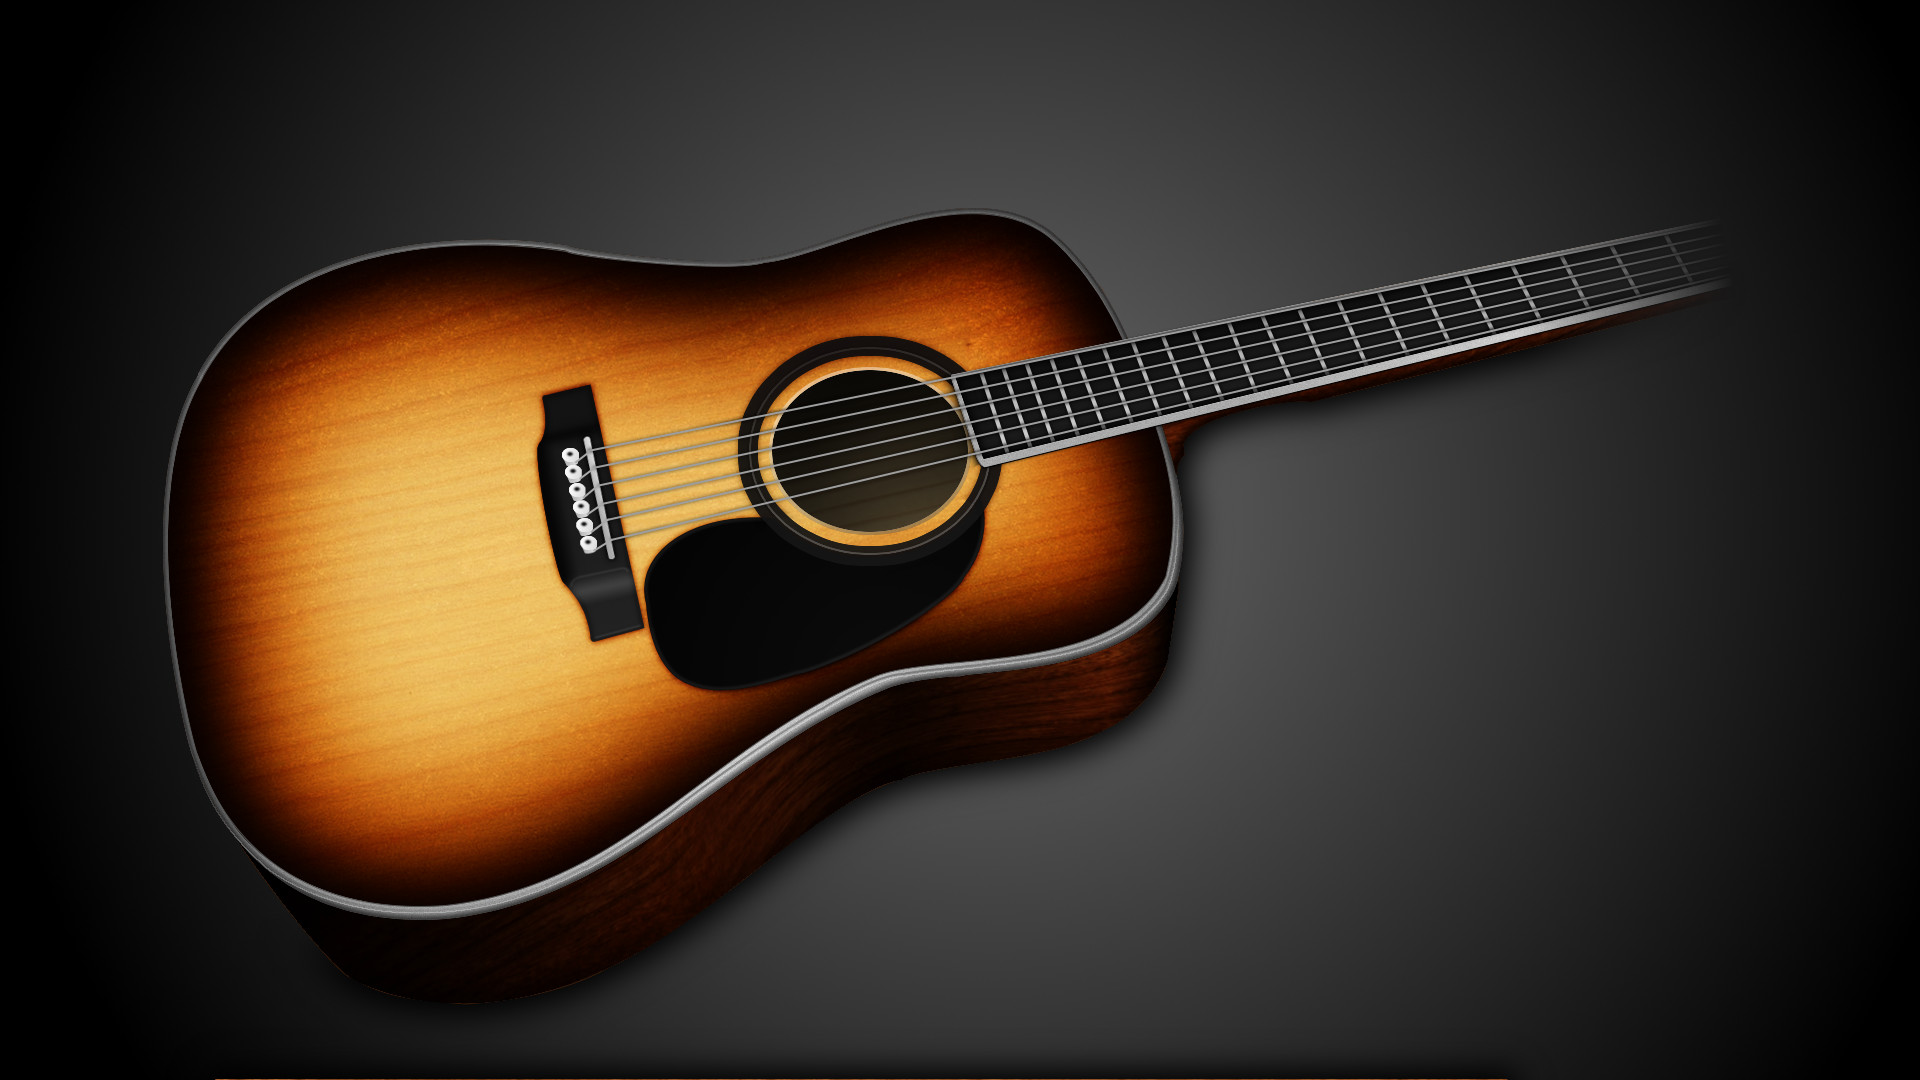 Guitar Wallpapers 1920x1080 Widescreen (74+ images)